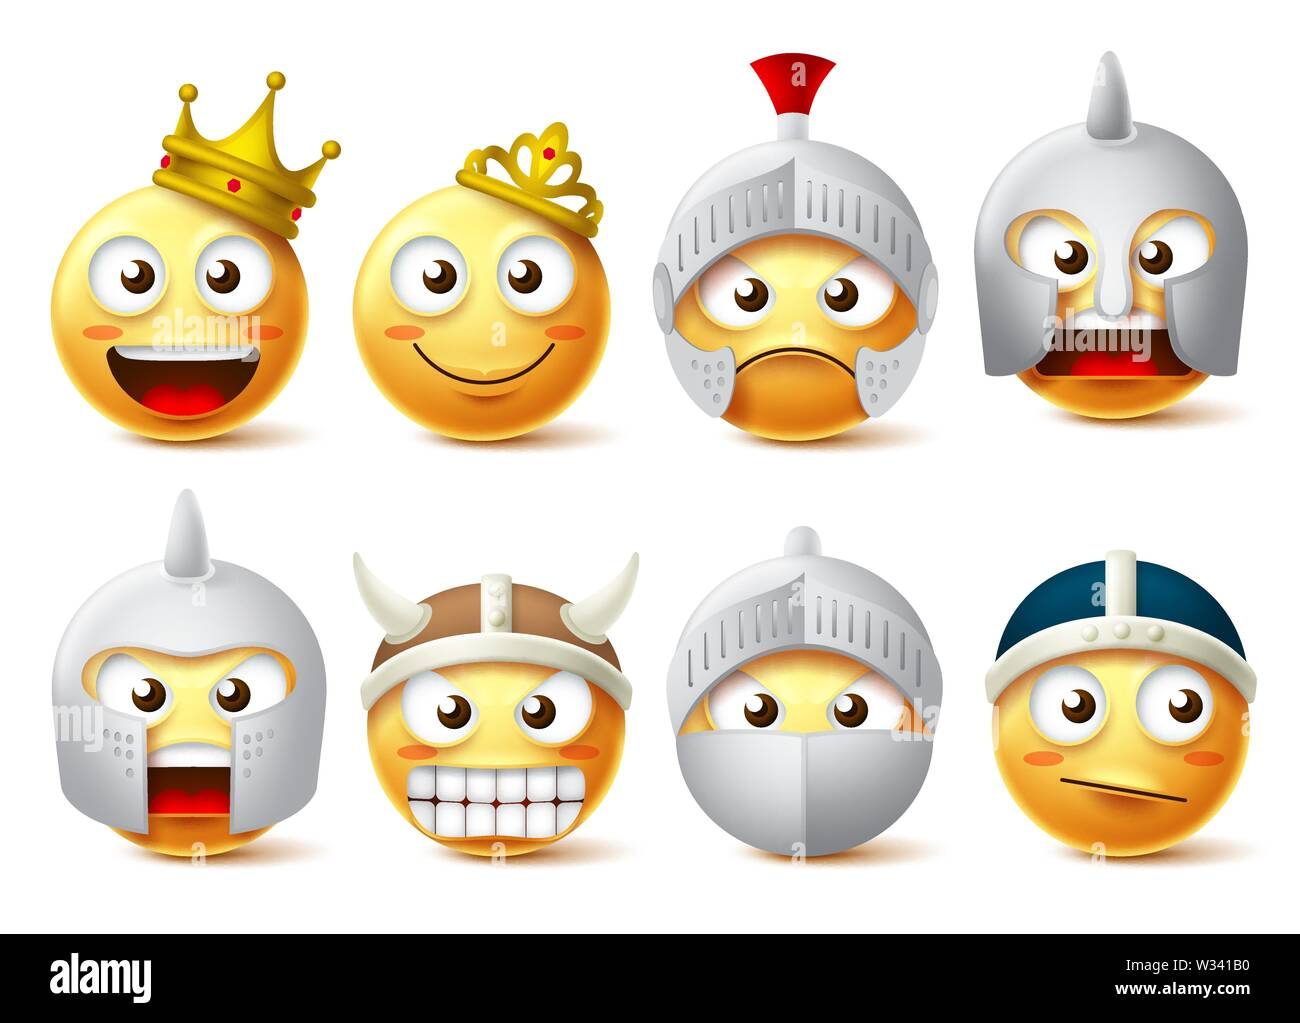 Emoticon Vector Set Smiley Face And Yellow Emoji Of King Stock